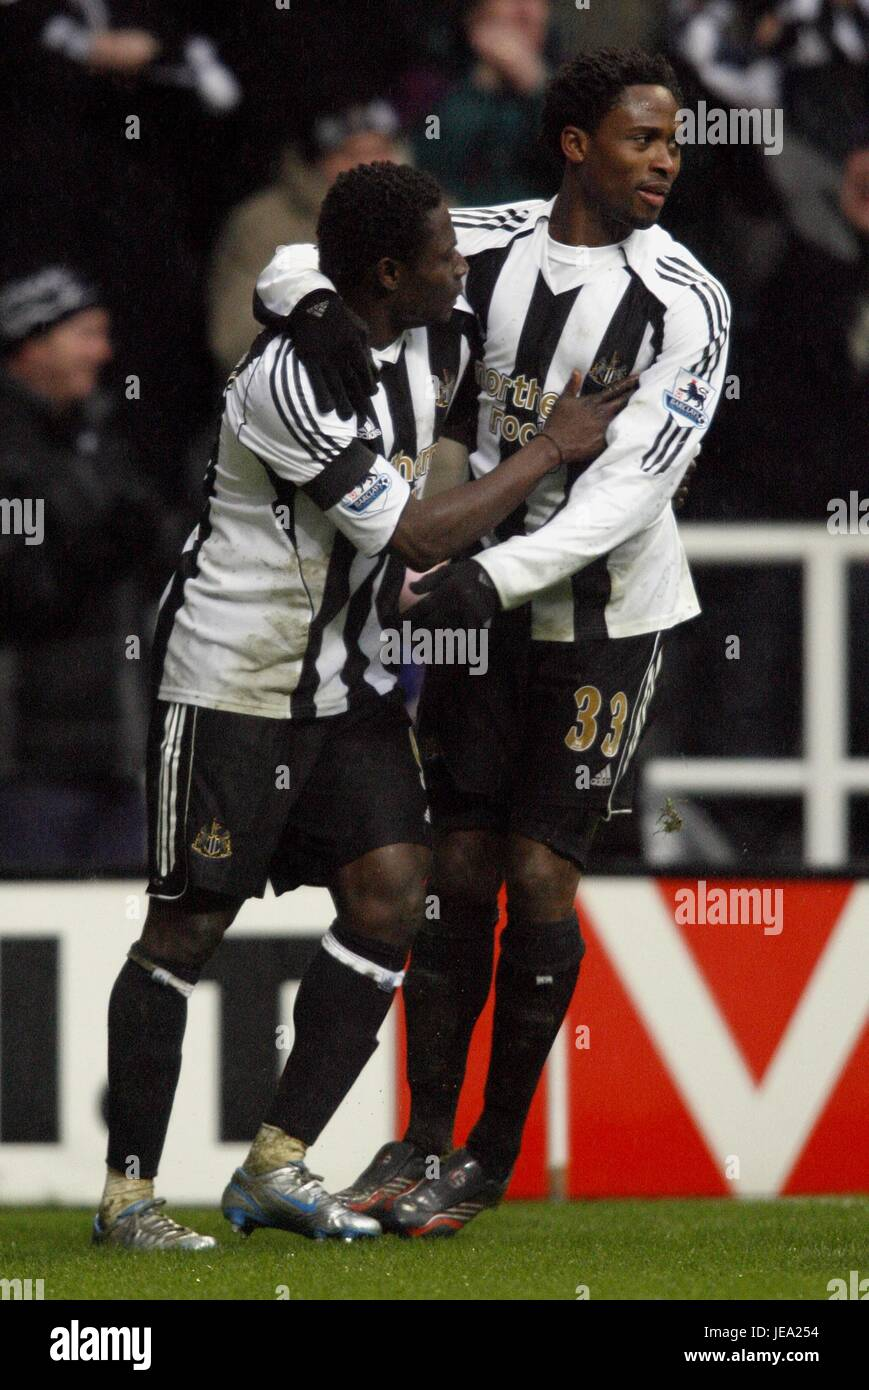 O MARTINS & CELESTINE BABAYARO NEWCASTLE V LIVERPOOL ST JAMES PARK NEWCASTLE ENGLAND 10 February 2007 - Stock Image